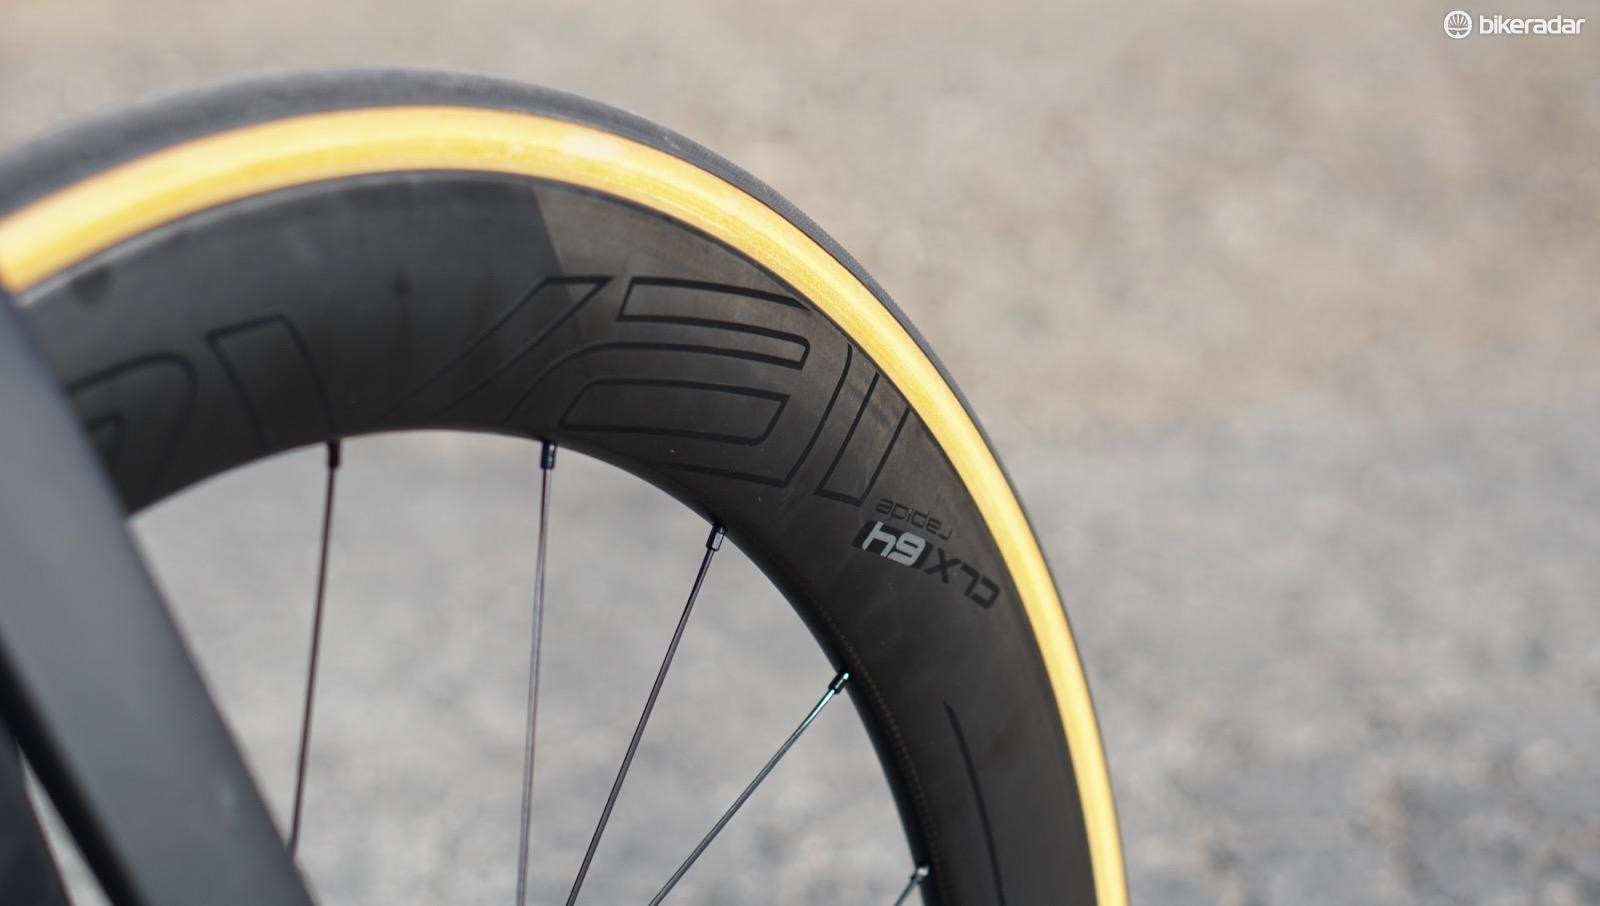 Roval CLX 64s sail through the wind, and the 26mm Turbo Cottons deliver a creamy (and speedy) ride